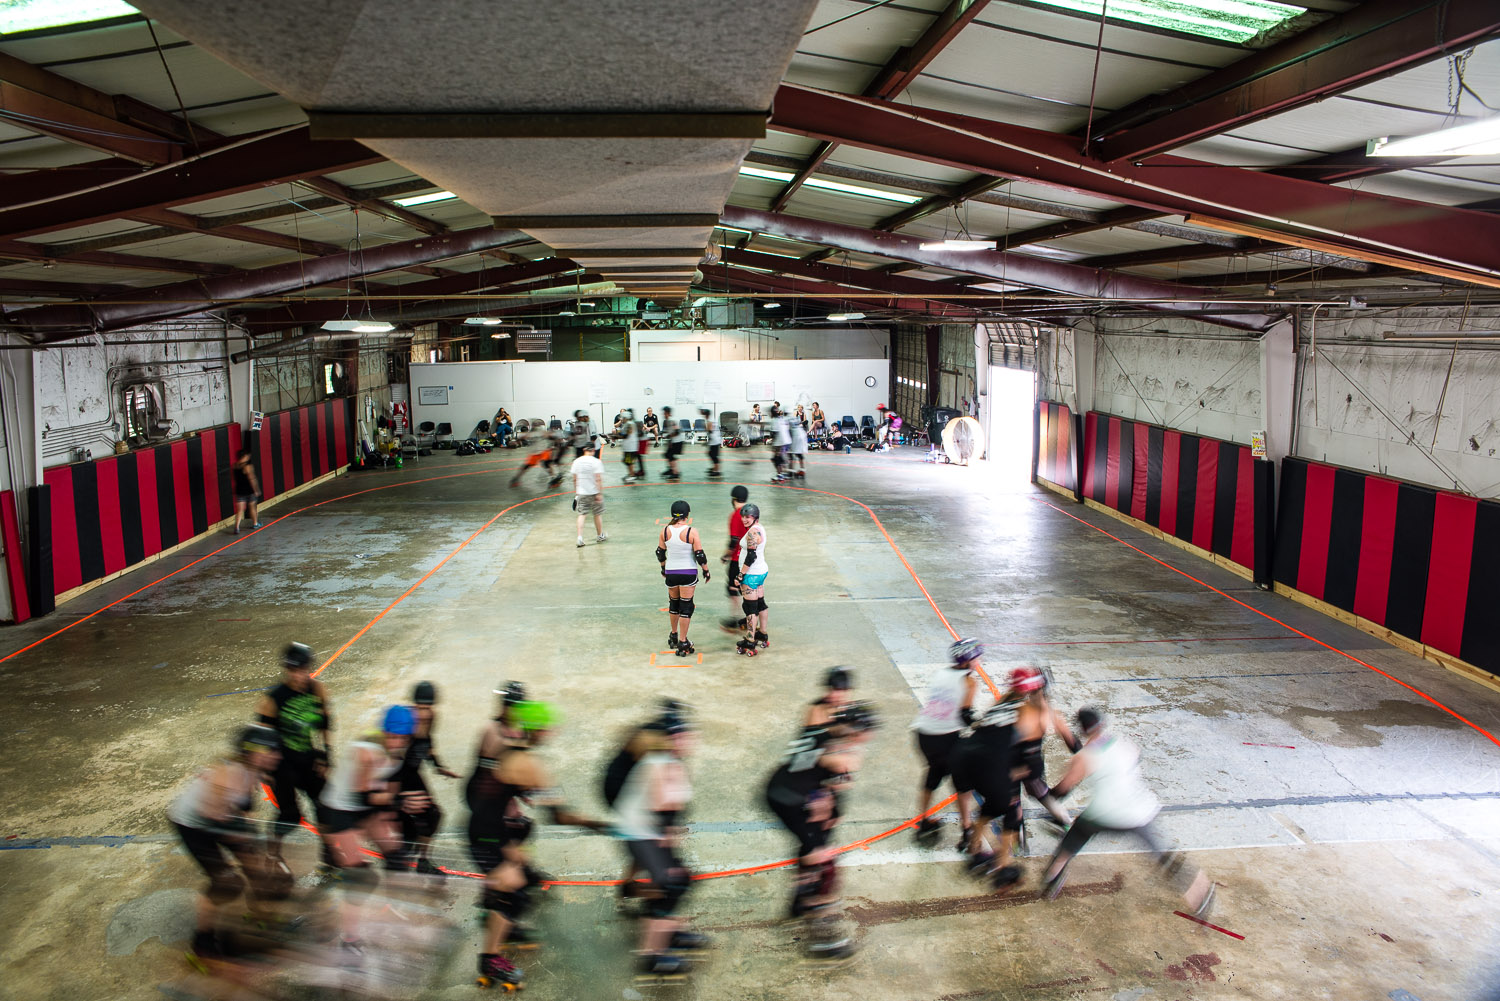 CRG practices in a warehouse next to an auto store on highway 64 in Apex, North Carolina. The rent is high and the player's dues help to pay it.